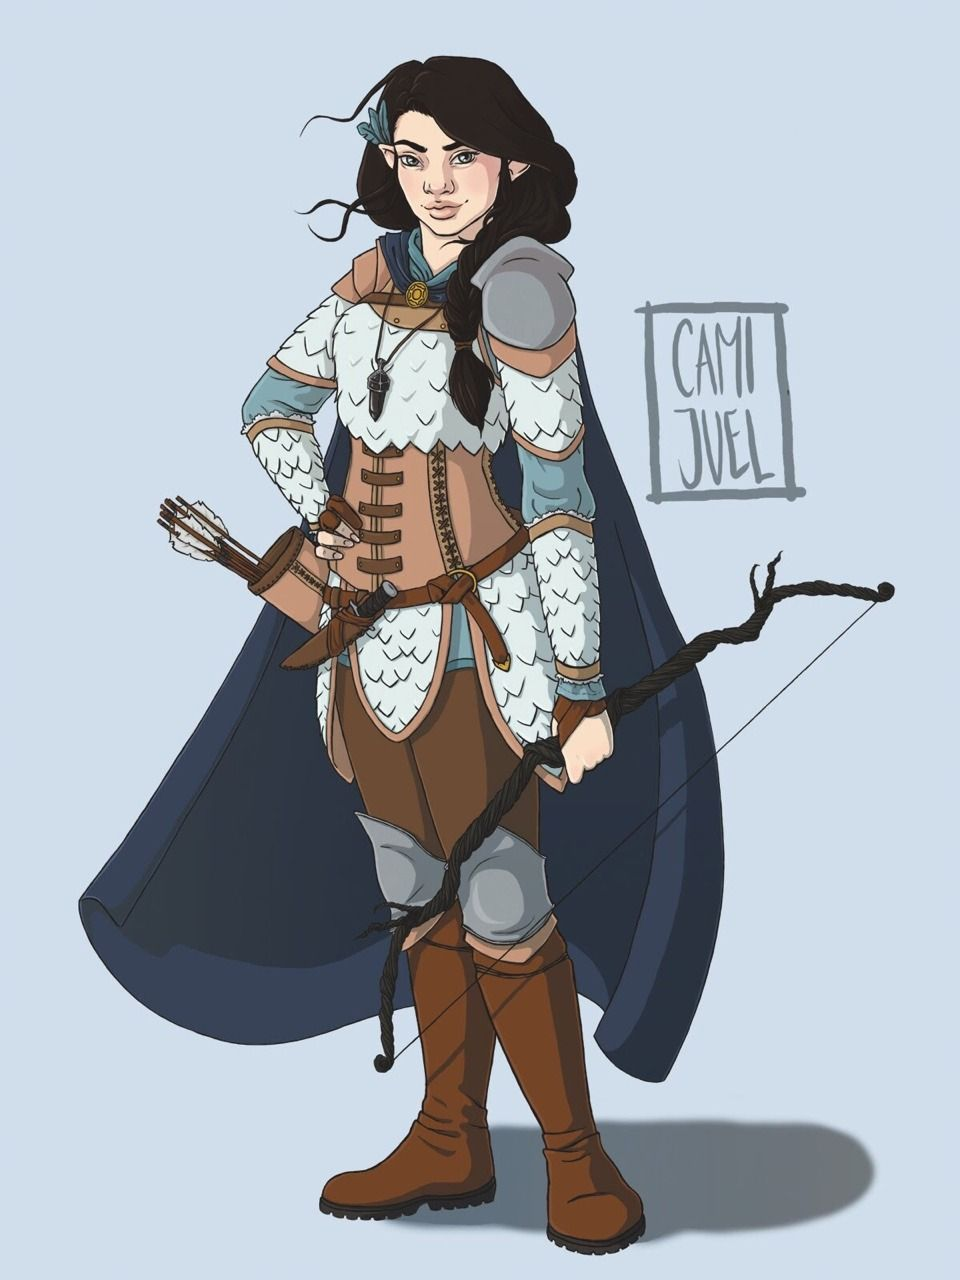 Pin By Hilary Gibson On Vex Ahlia Dragon Scale Armor Dragon Scale Armor Critical Role Fan Art Game Character Design An invoked trope, as dragons are her favored enemy. dragon scale armor dragon scale armor